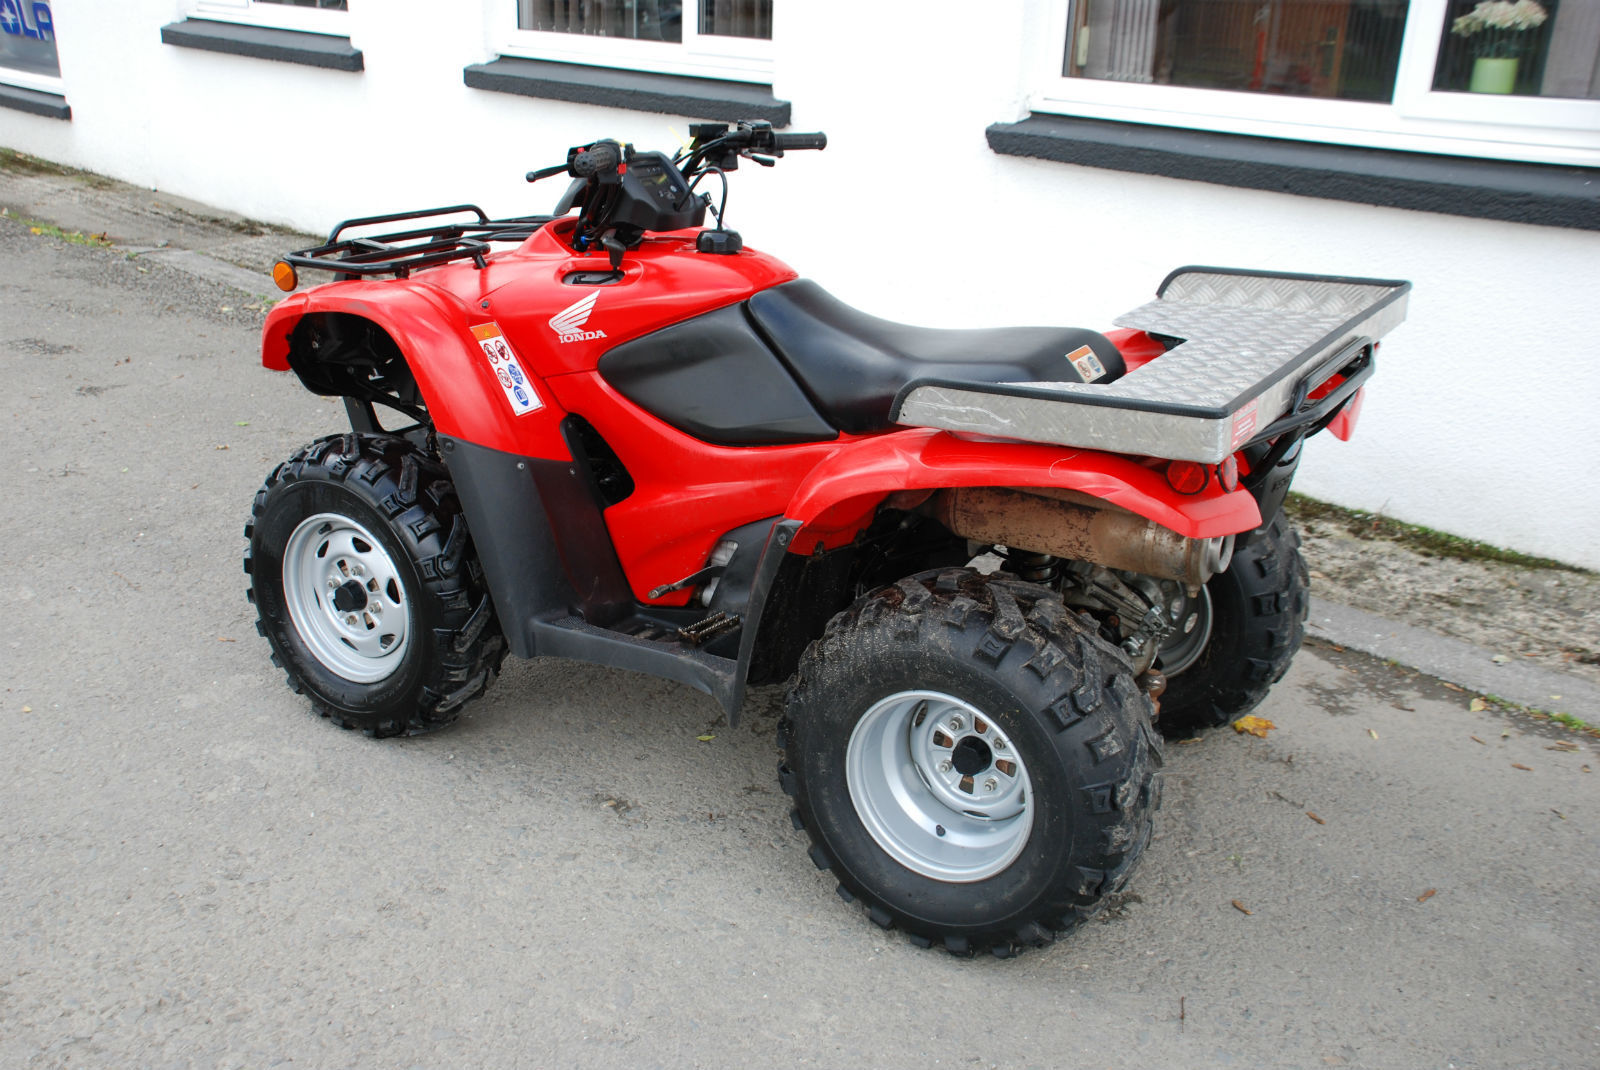 2012 honda trx420fmc 2wd 4wd quad atv. Black Bedroom Furniture Sets. Home Design Ideas